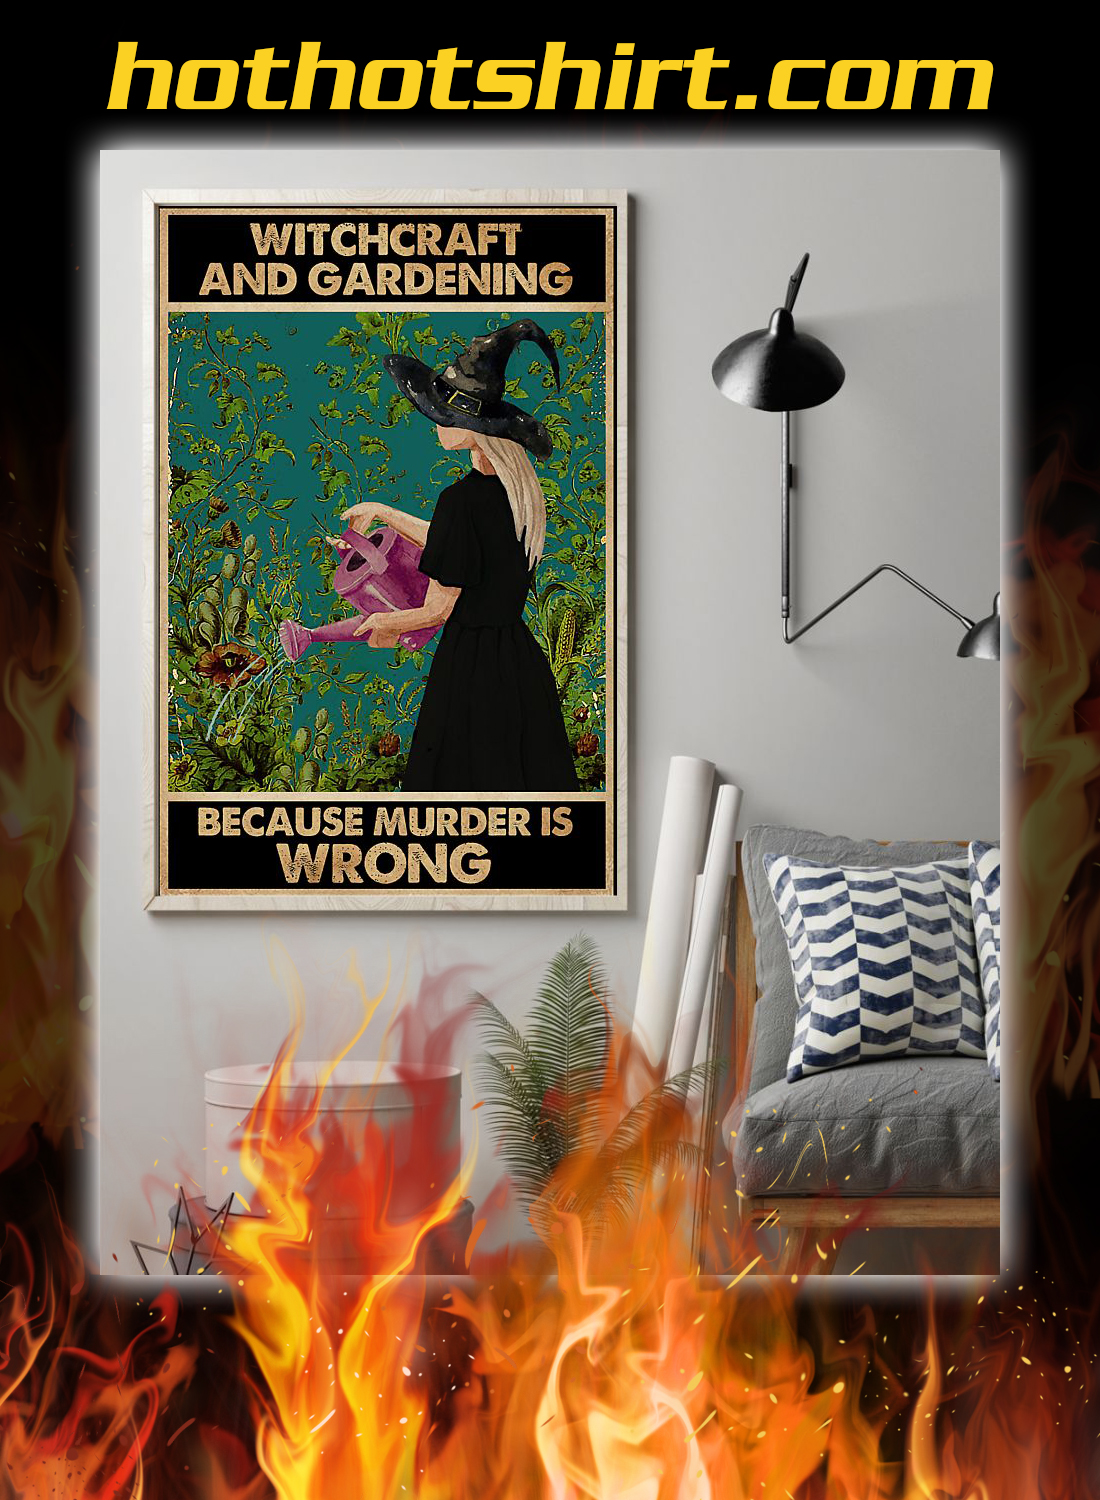 Witchcraft and gardening becasue murder is wrong poster.